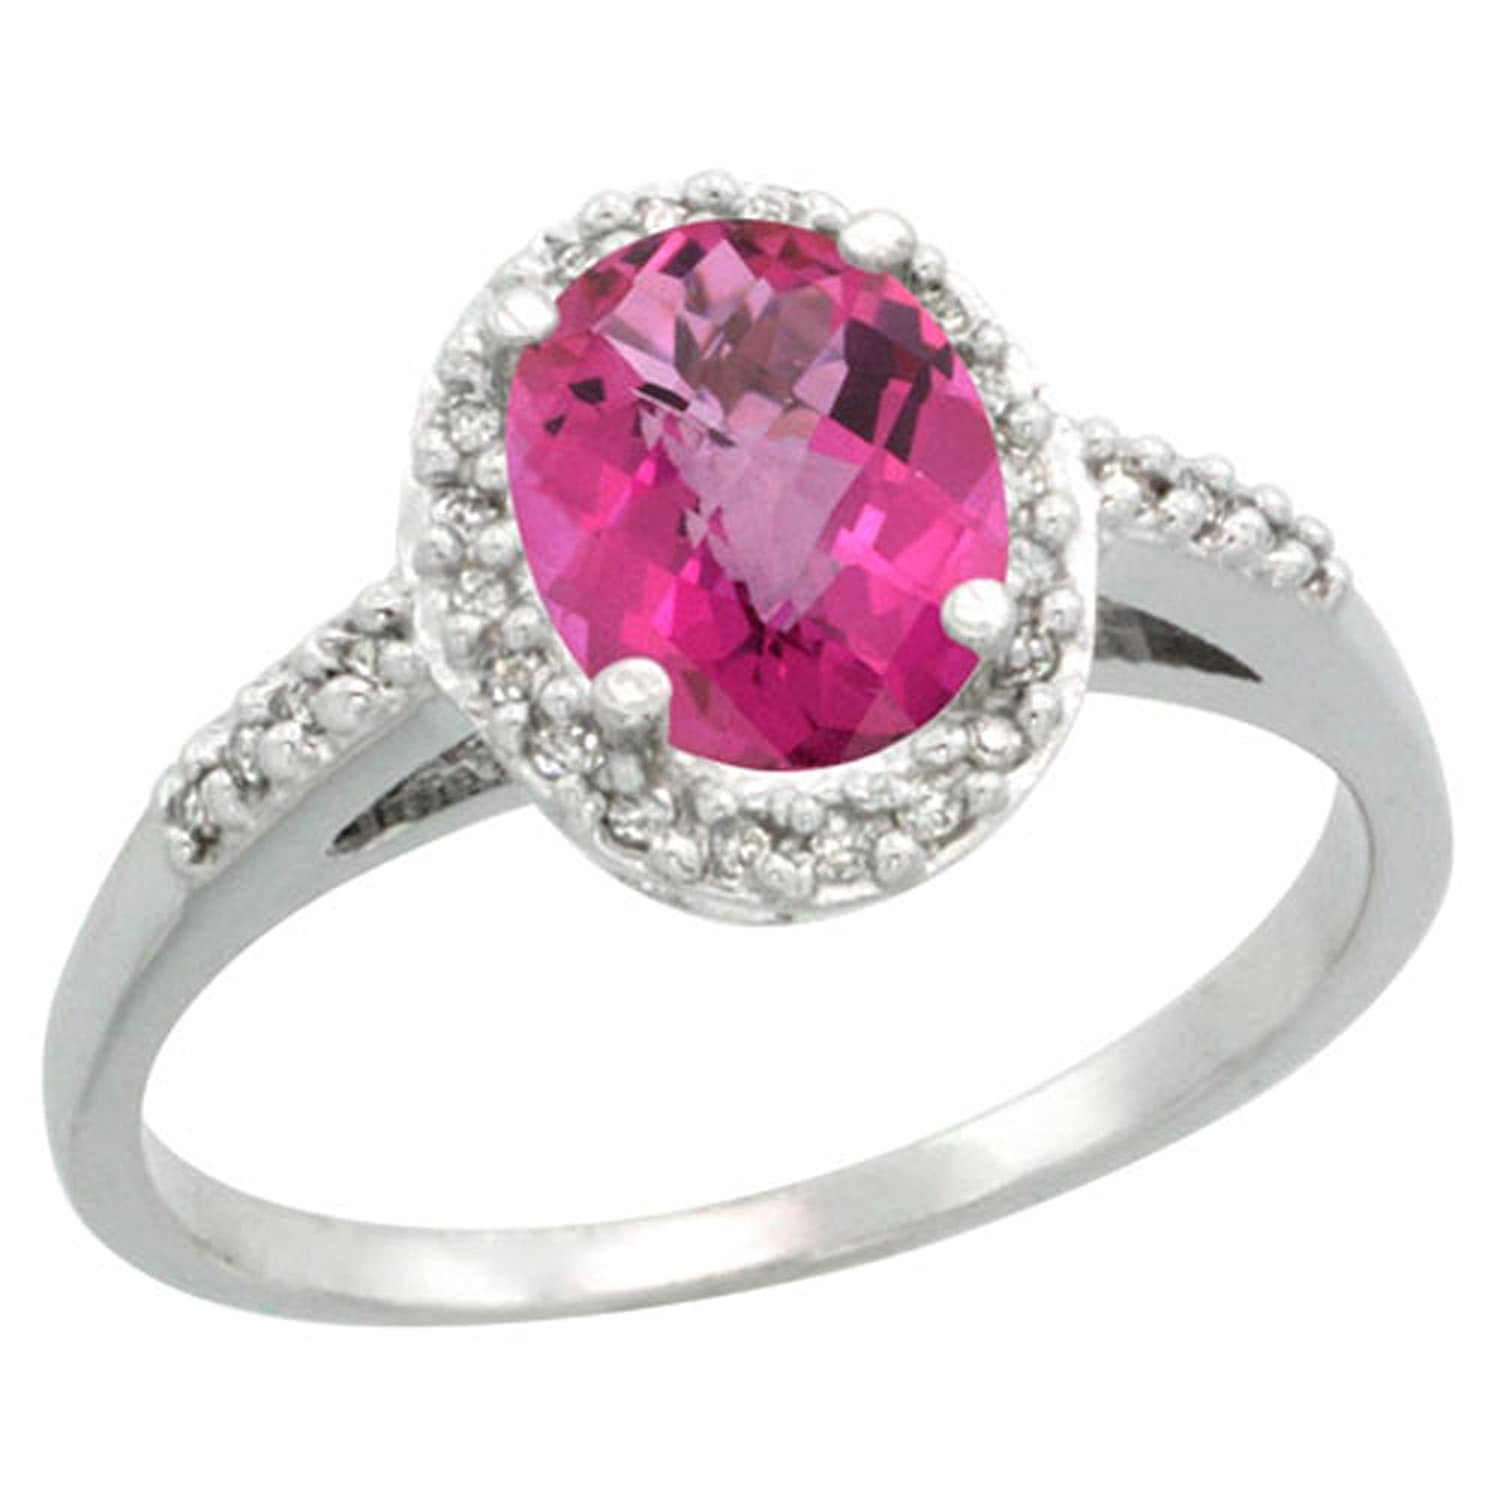 Sterling Silver Diamond Natural Pink Sapphire Ring Oval 8x6 mm ...